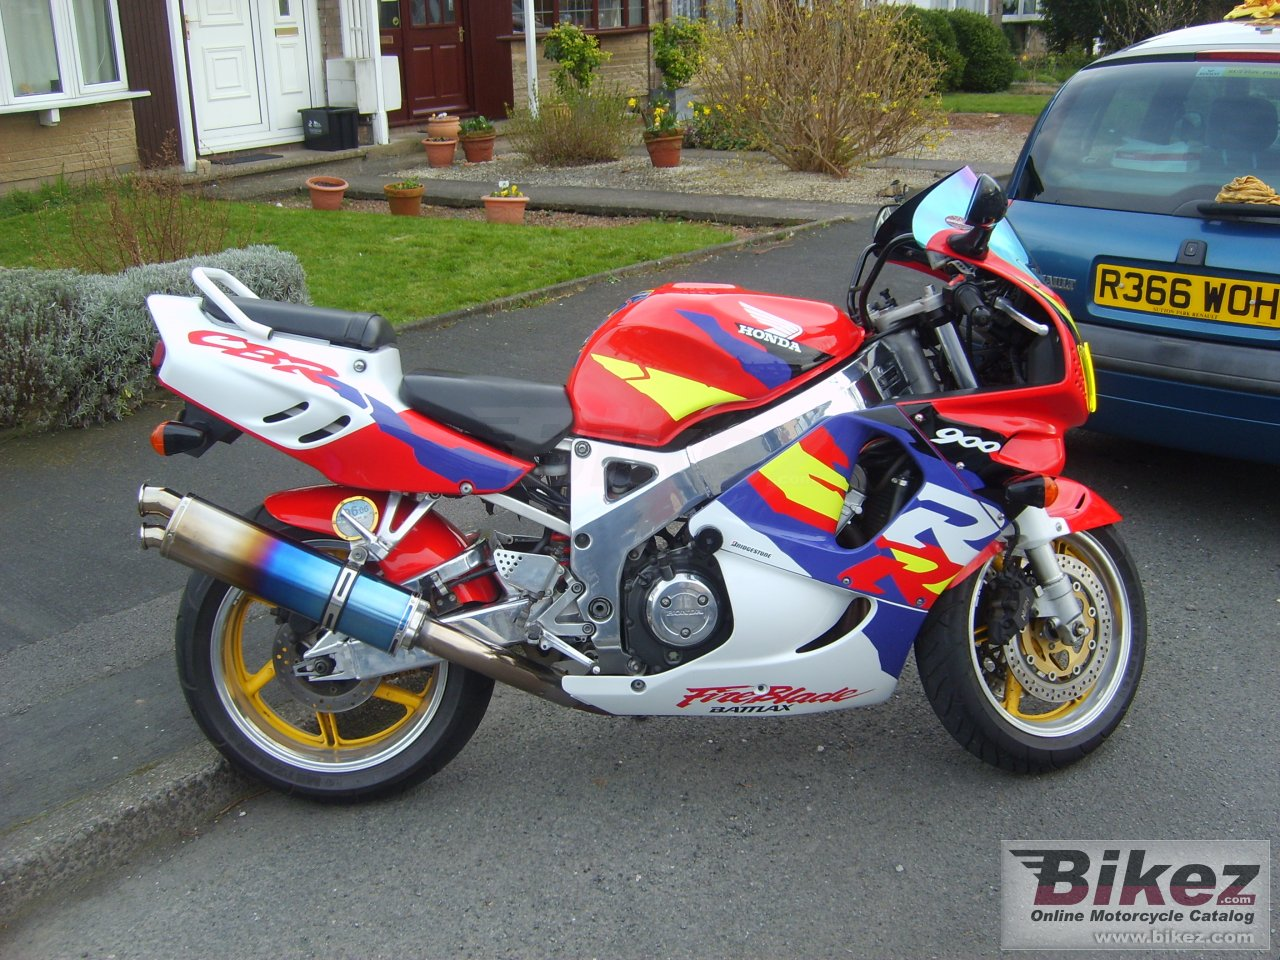 Big  cbr 900 rr fireblade picture and wallpaper from Bikez.com